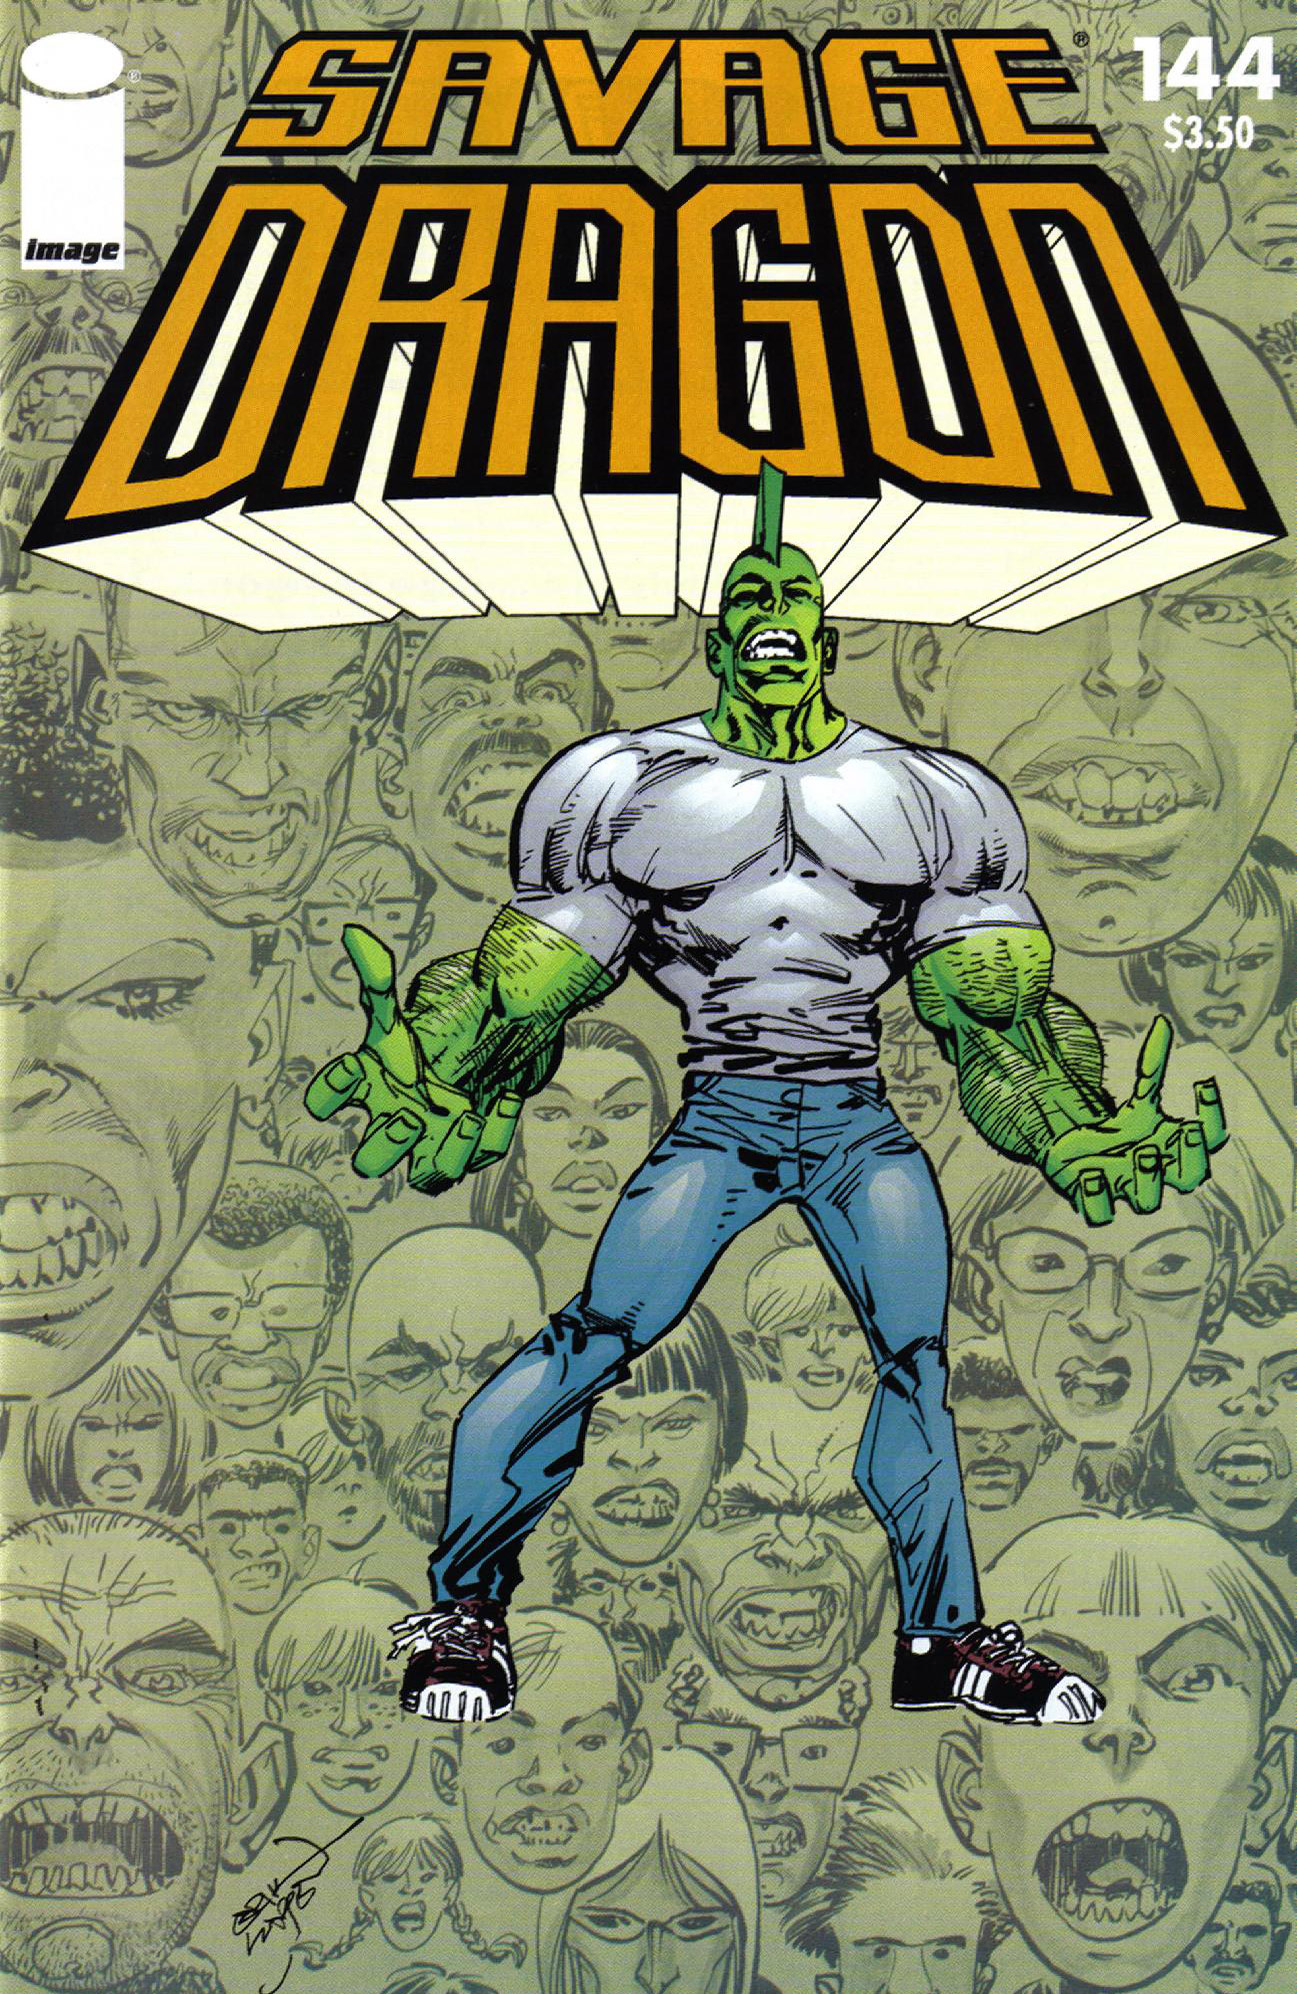 Cover Savage Dragon Vol.2 #144